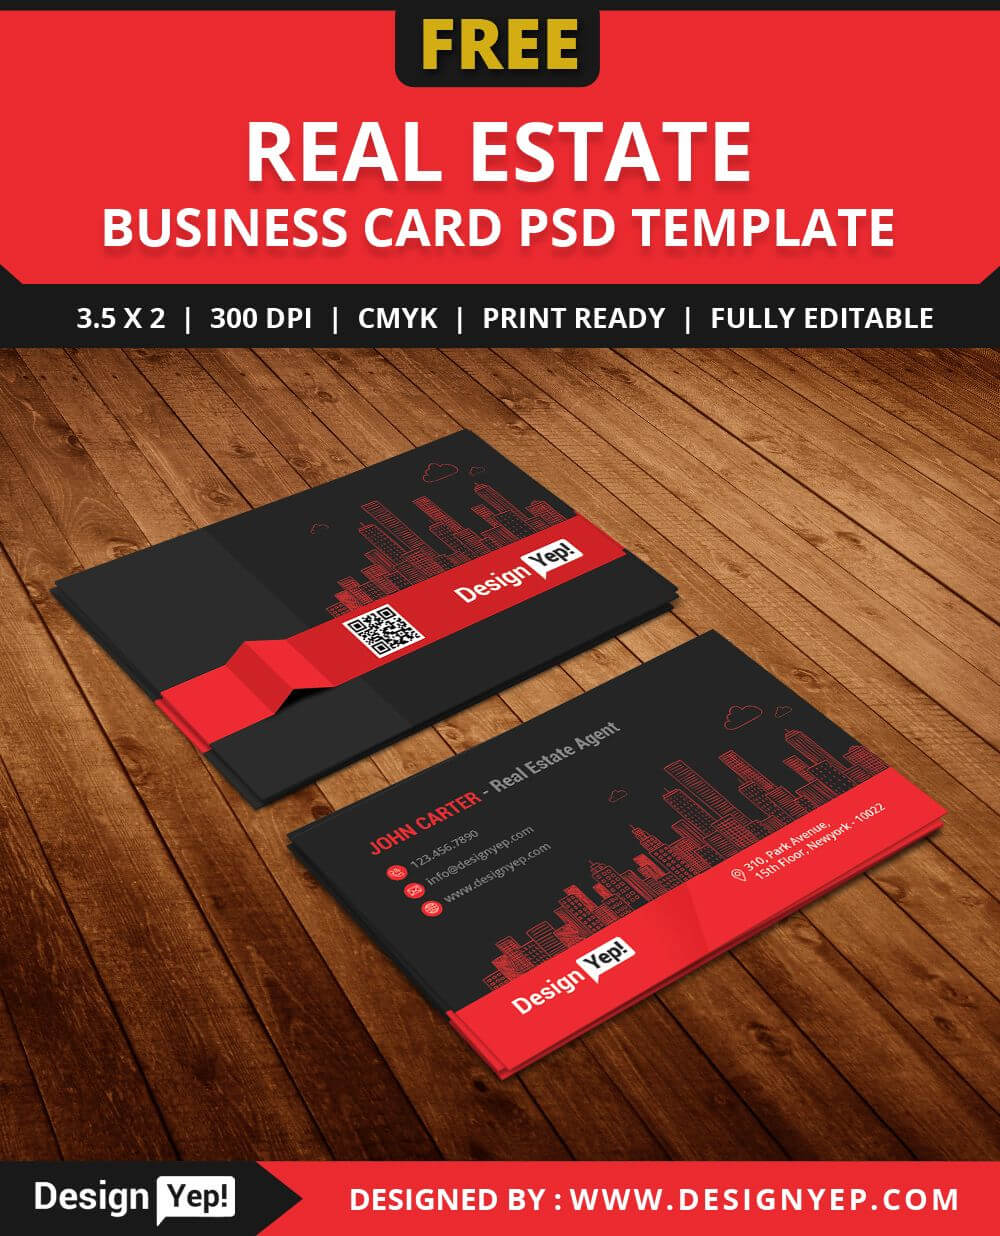 Free Real Estate Agent Business Card Template Psd | Business Intended For Real Estate Agent Business Card Template